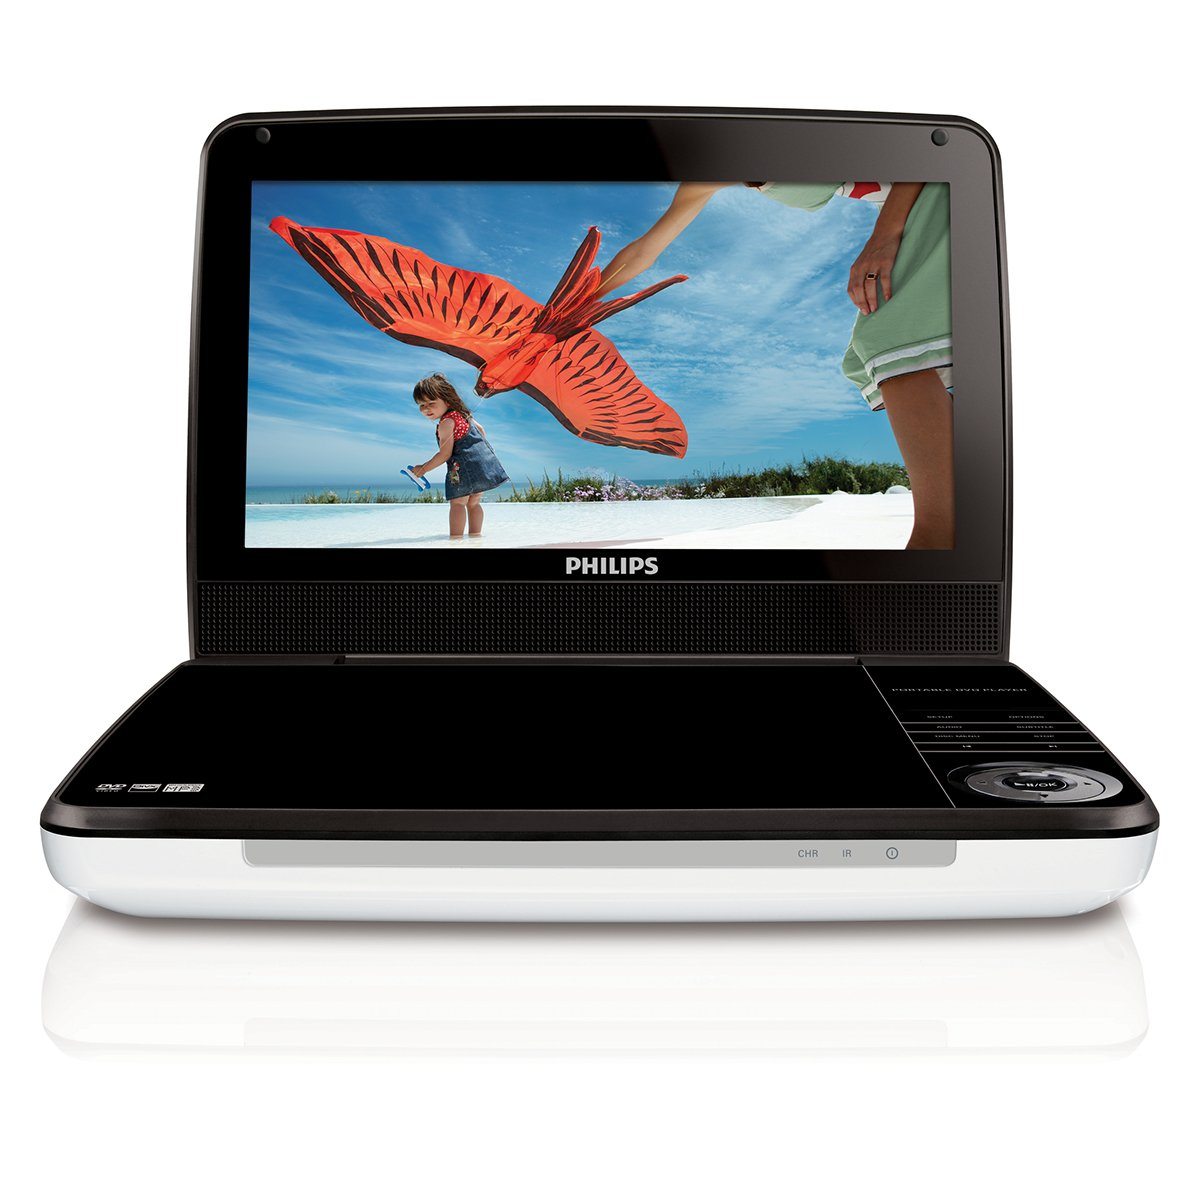 Philips PD9000/37 9-Inch LCD Portable DVD Player,White リージョンフリー 並行輸入品   B003CY0SR6